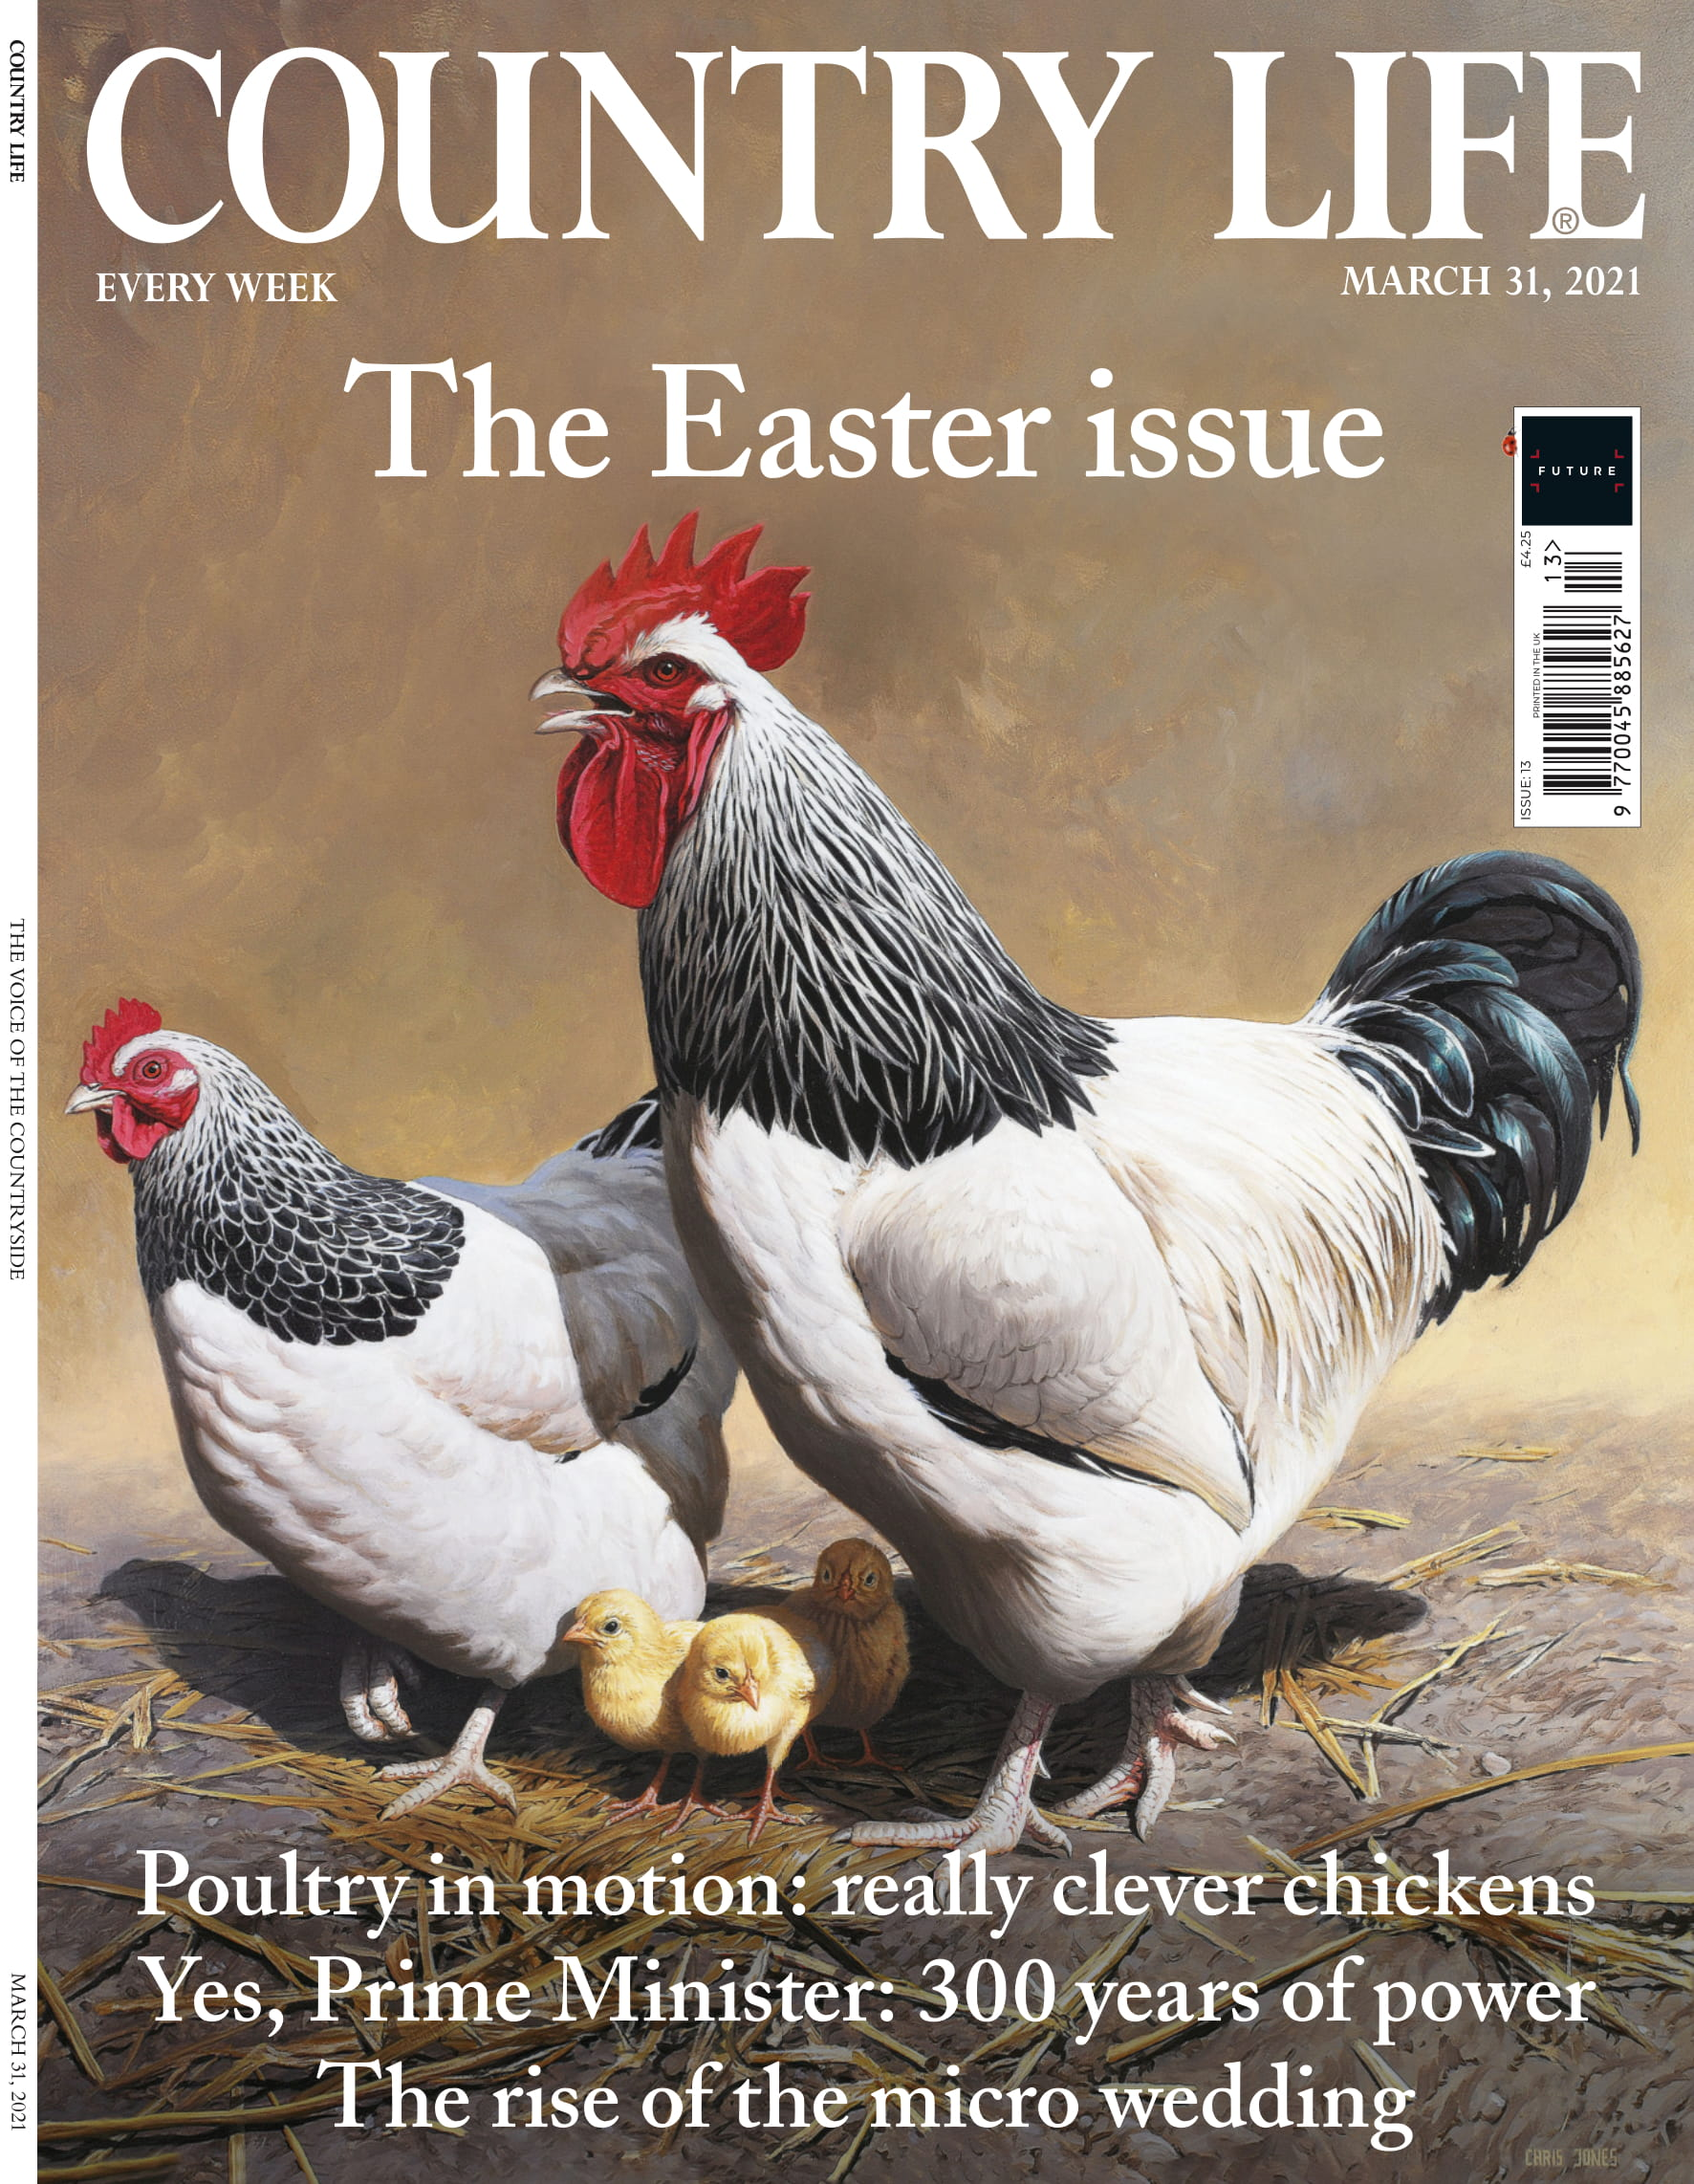 Country Life March 2021 cover